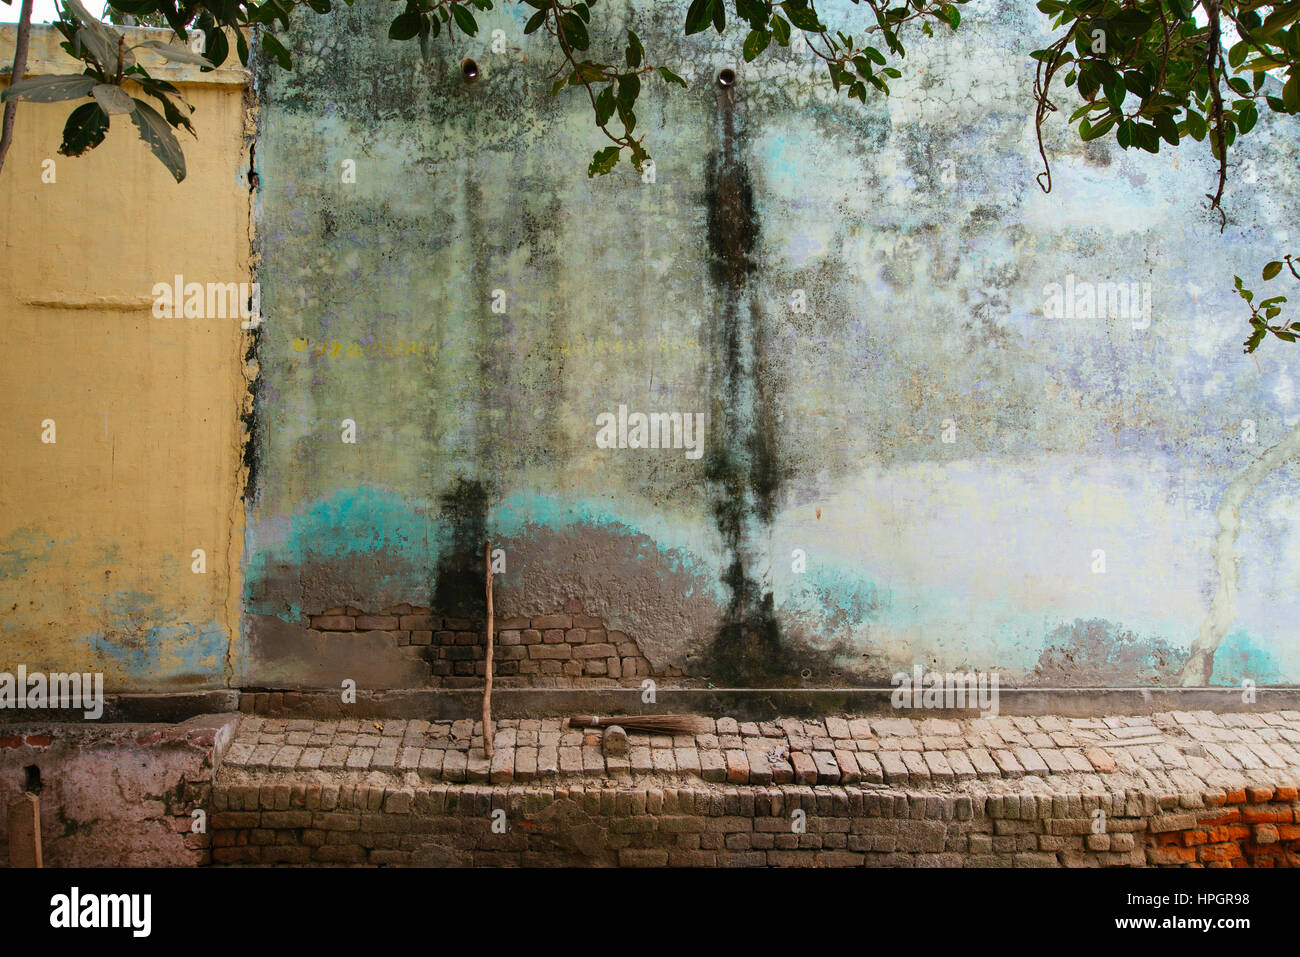 Village wall blue paint fade, India. - Stock Image